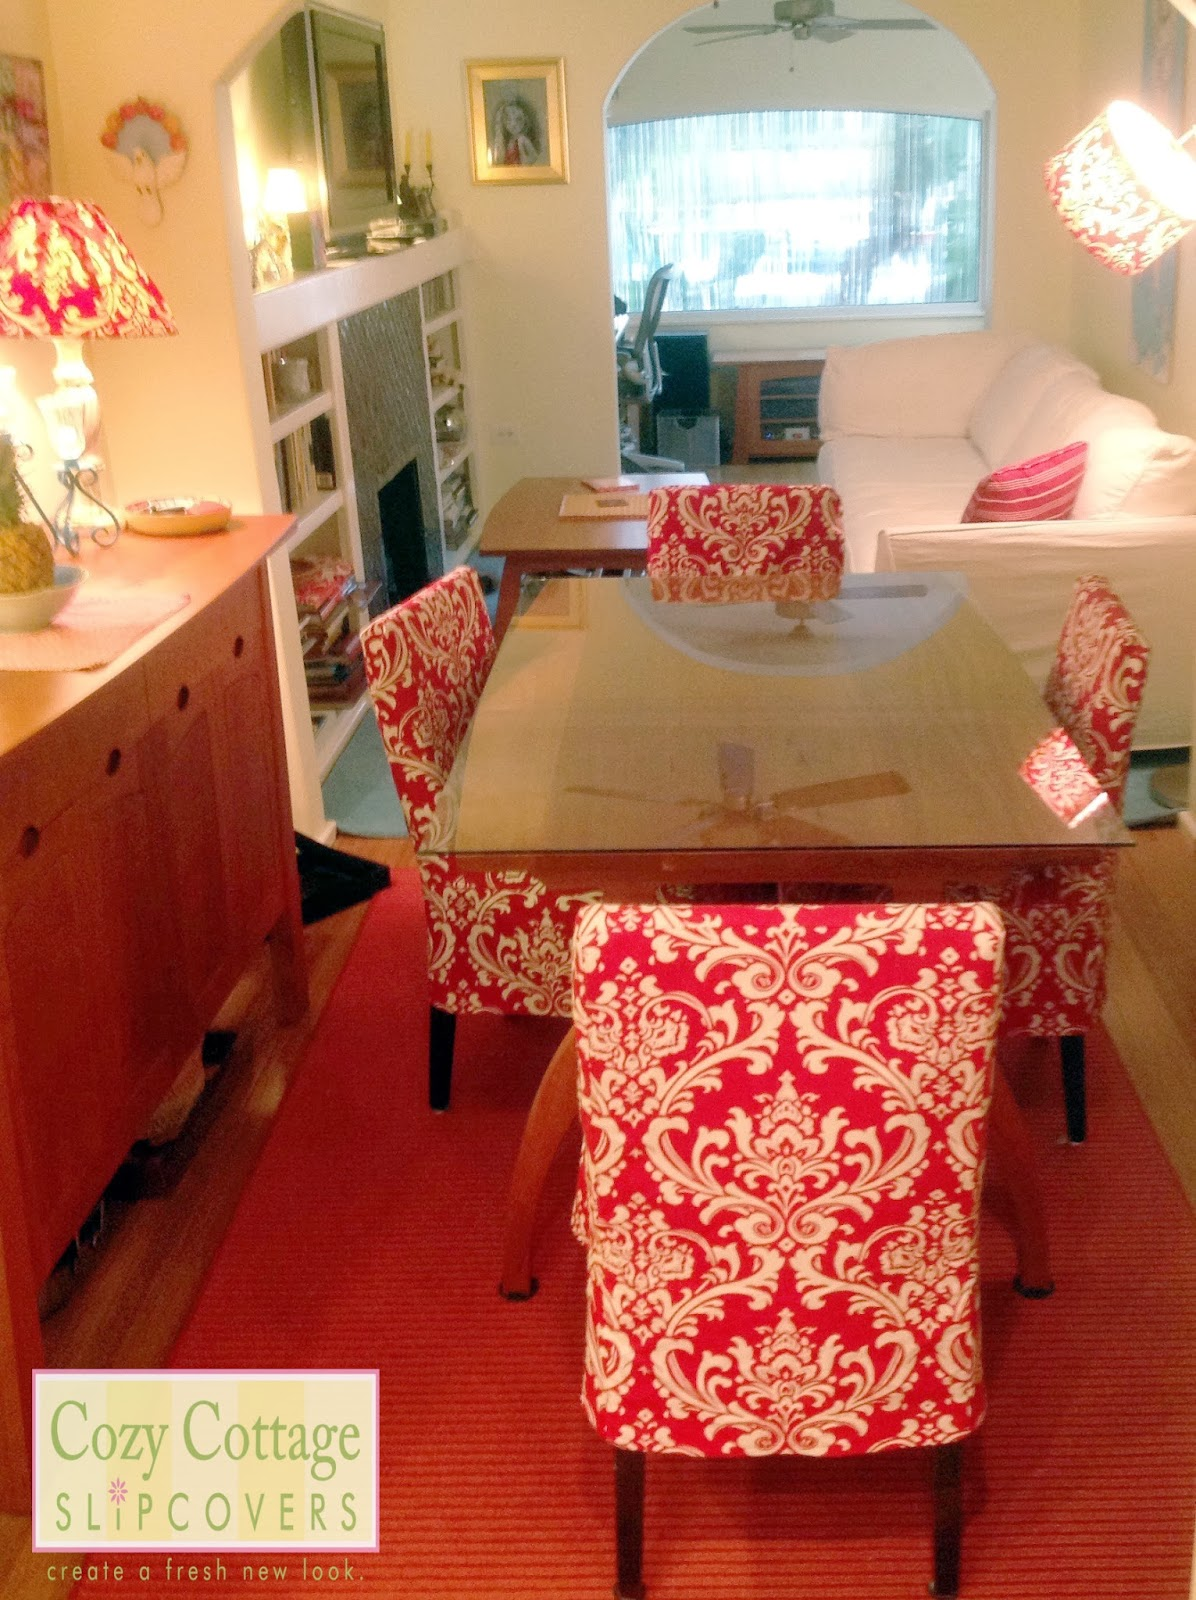 Cozy cottage slipcovers new office chair slipcovers - My Customer Lives In Florida And I Made The Slipcovers From Measurements Alone She Chose This Beautiful Bold Red Patterned Fabric